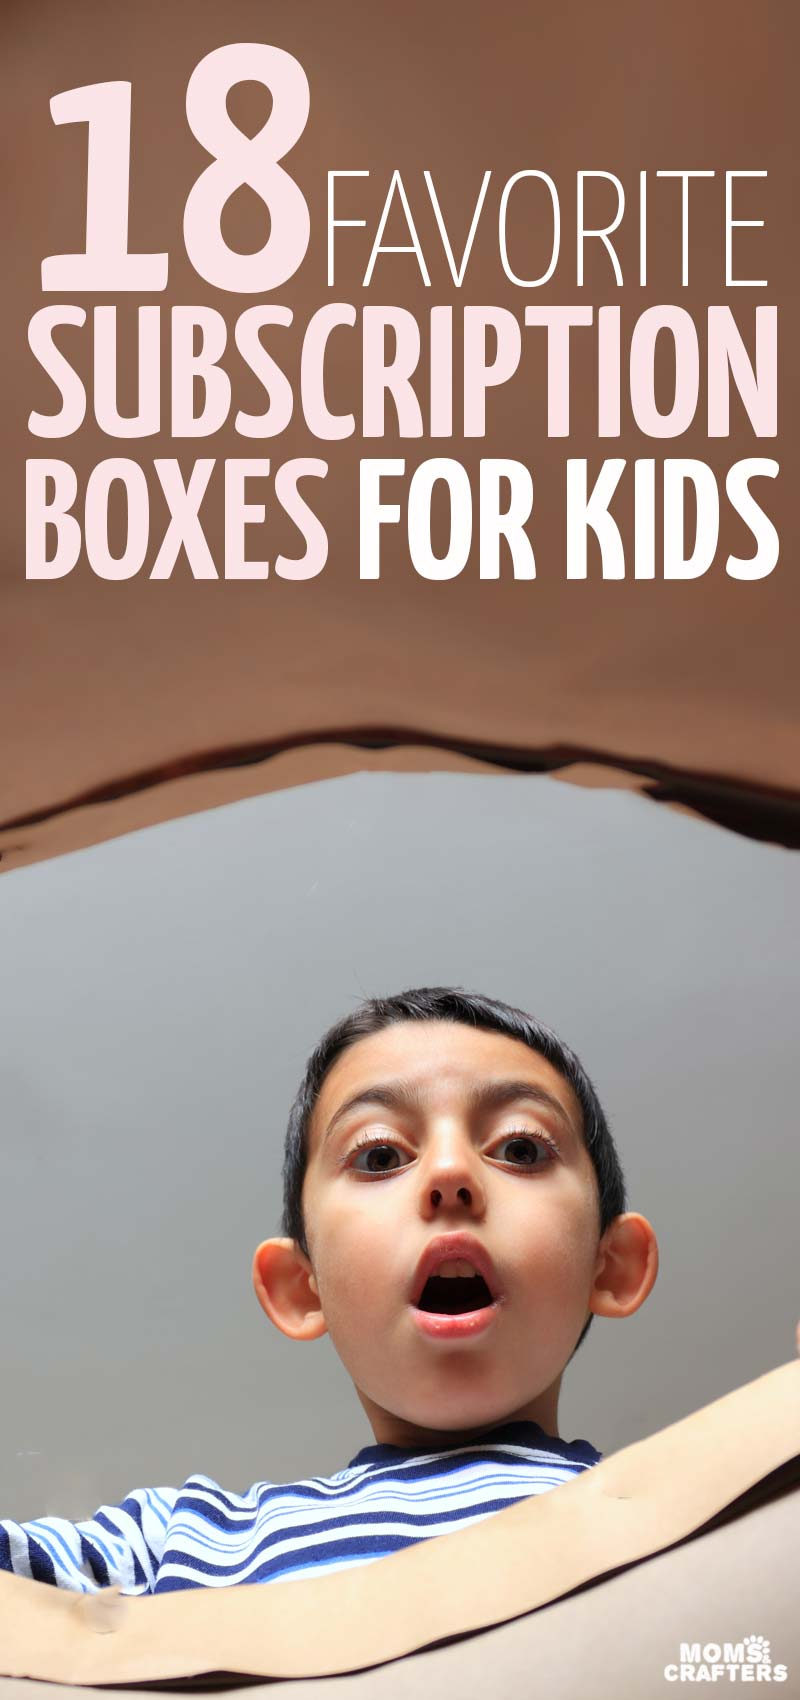 You'll love these awesome ideas for subscription boxes for kids - including books, toys, clothing, and other non-toy gift ideas for babies toddlers preschoolers - and even teenagers! These holiday gift ideas are great for birthday gifts too and year round - because they keep on giving! They include gifts for crafters too! #giftideas #christmas #gifts